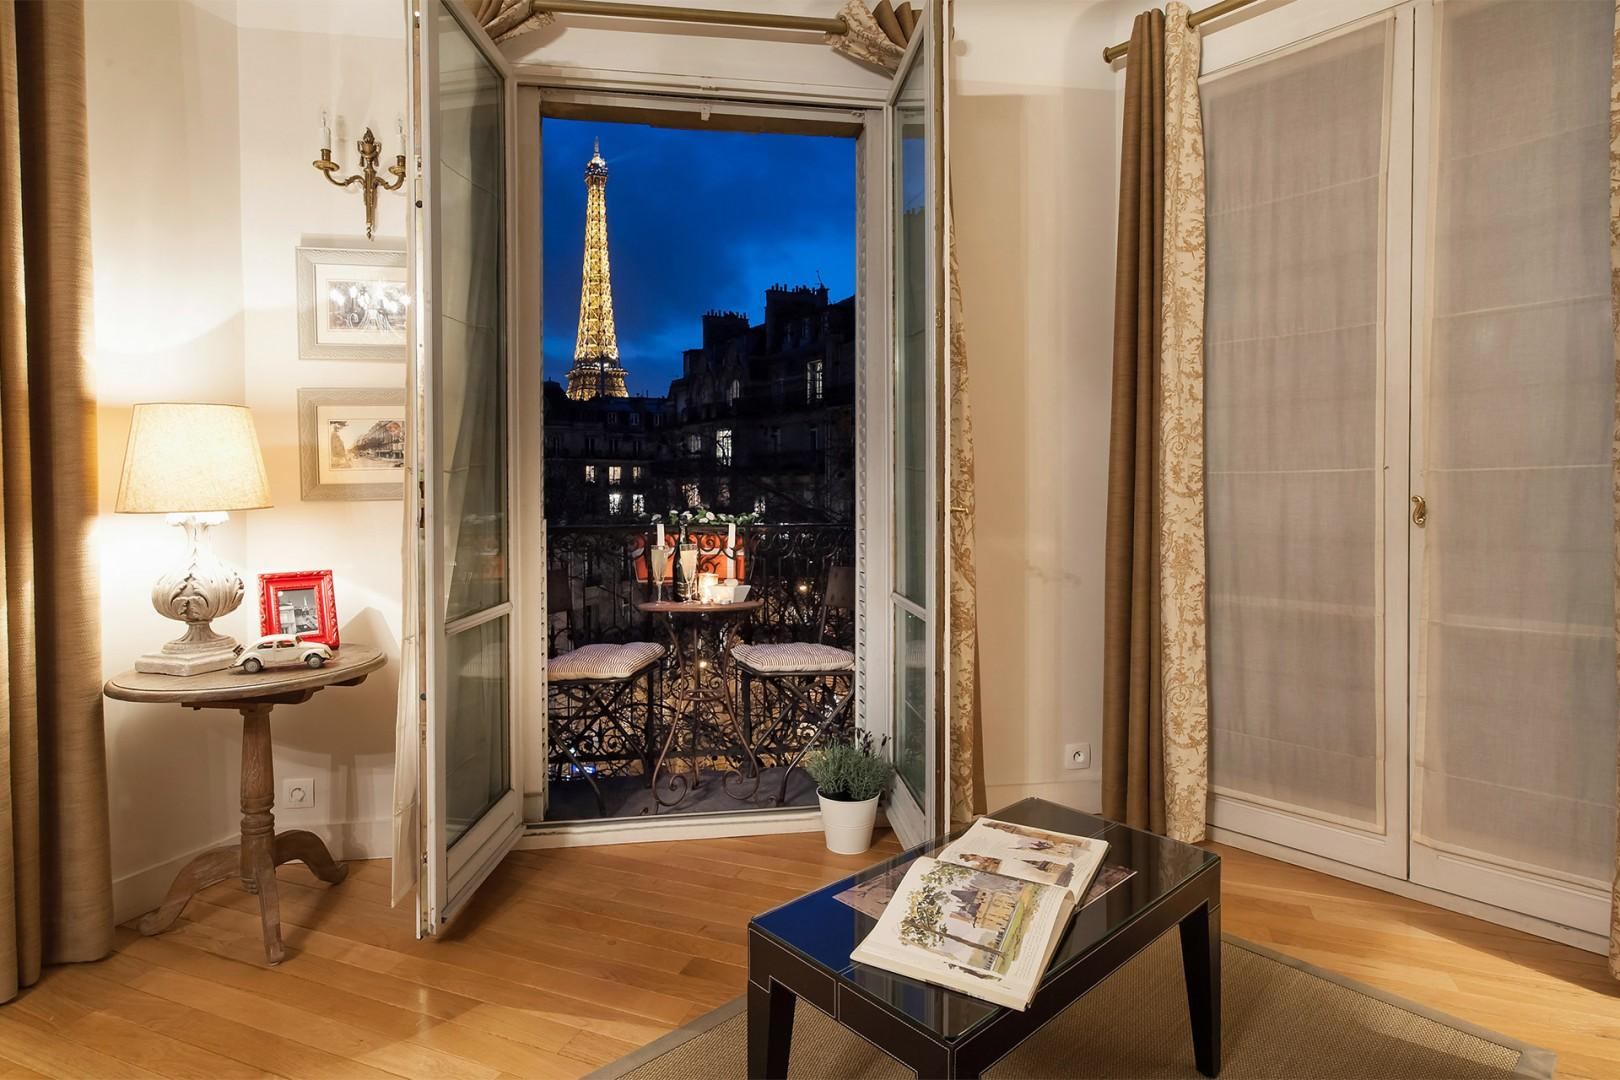 Enjoy direct views of the Eiffel Tower from the sitting room.